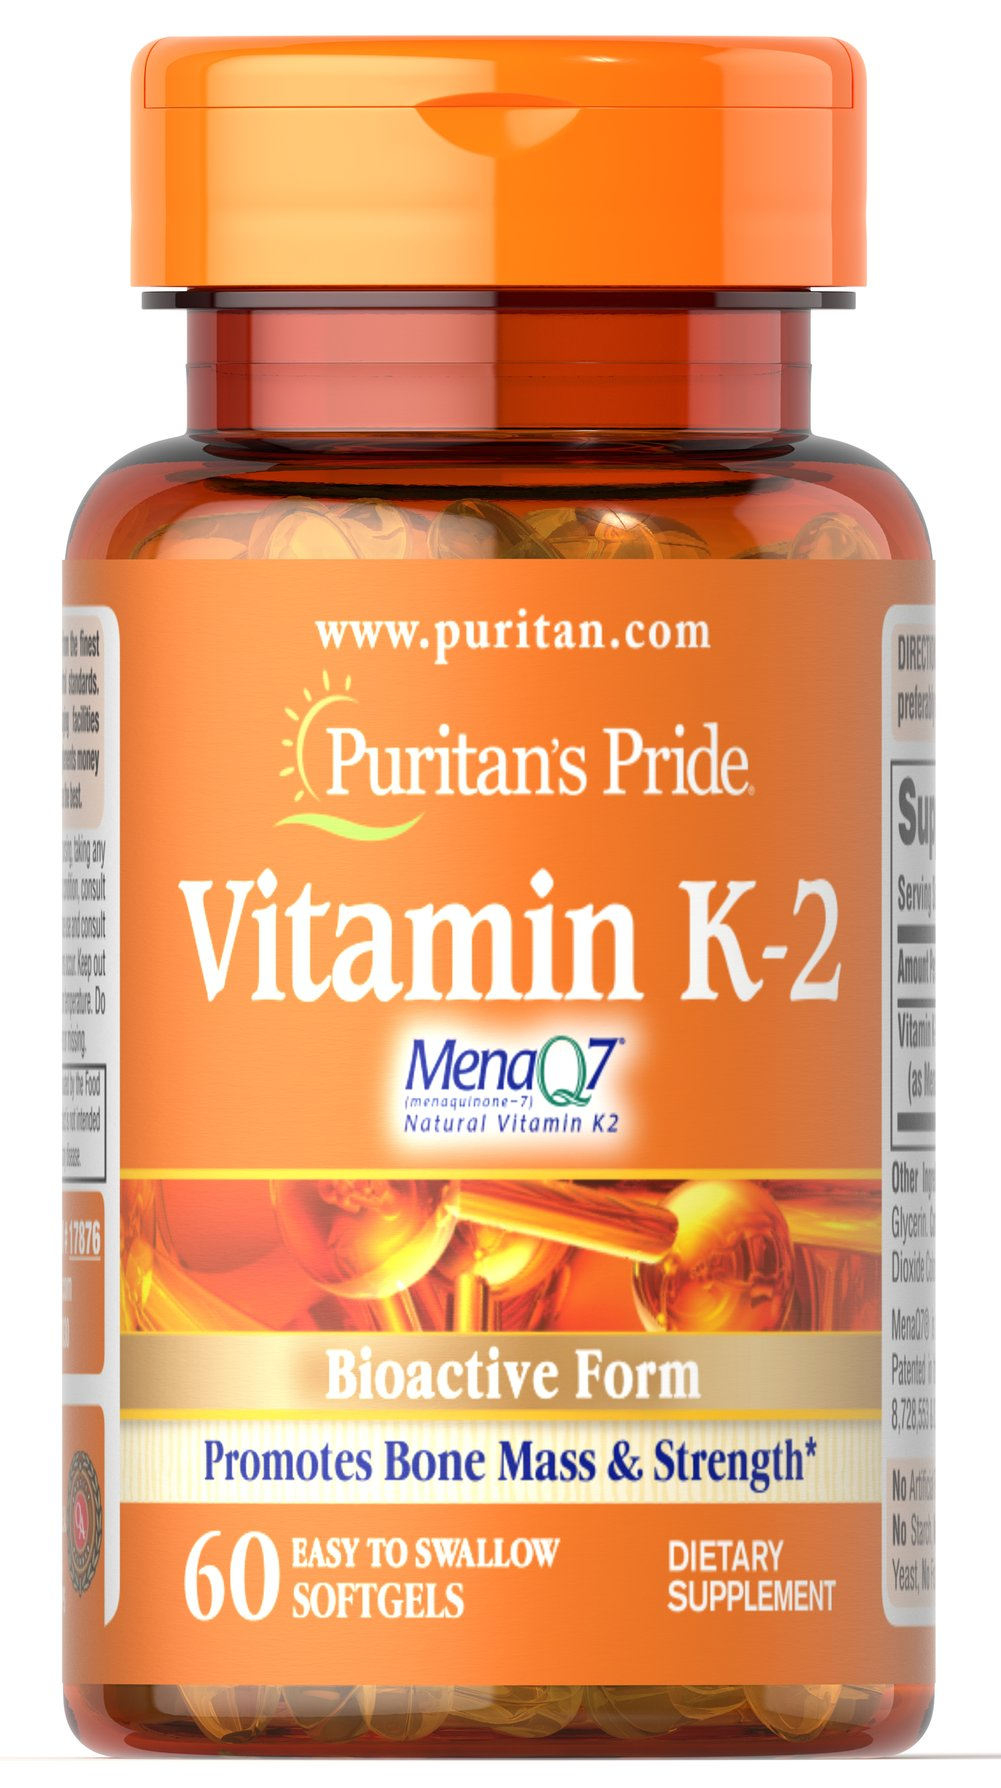 Vitamin K-2 (MenaQ7) 50 mcg  60 Softgels 50 mcg $34.99